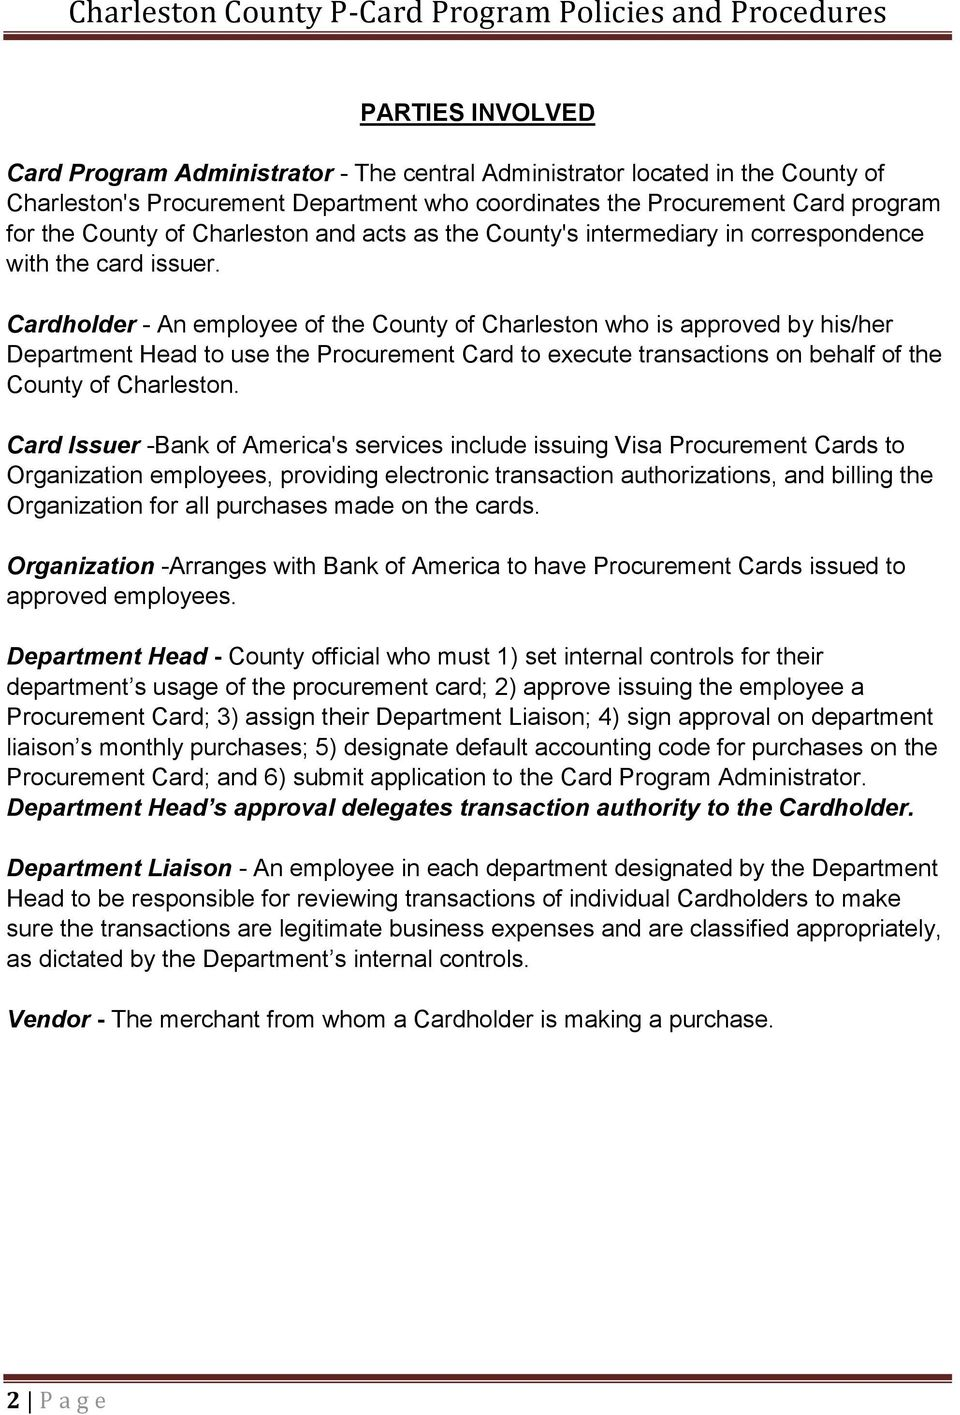 Cardholder - An employee of the County of Charleston who is approved by his/her Department Head to use the Procurement Card to execute transactions on behalf of the County of Charleston.